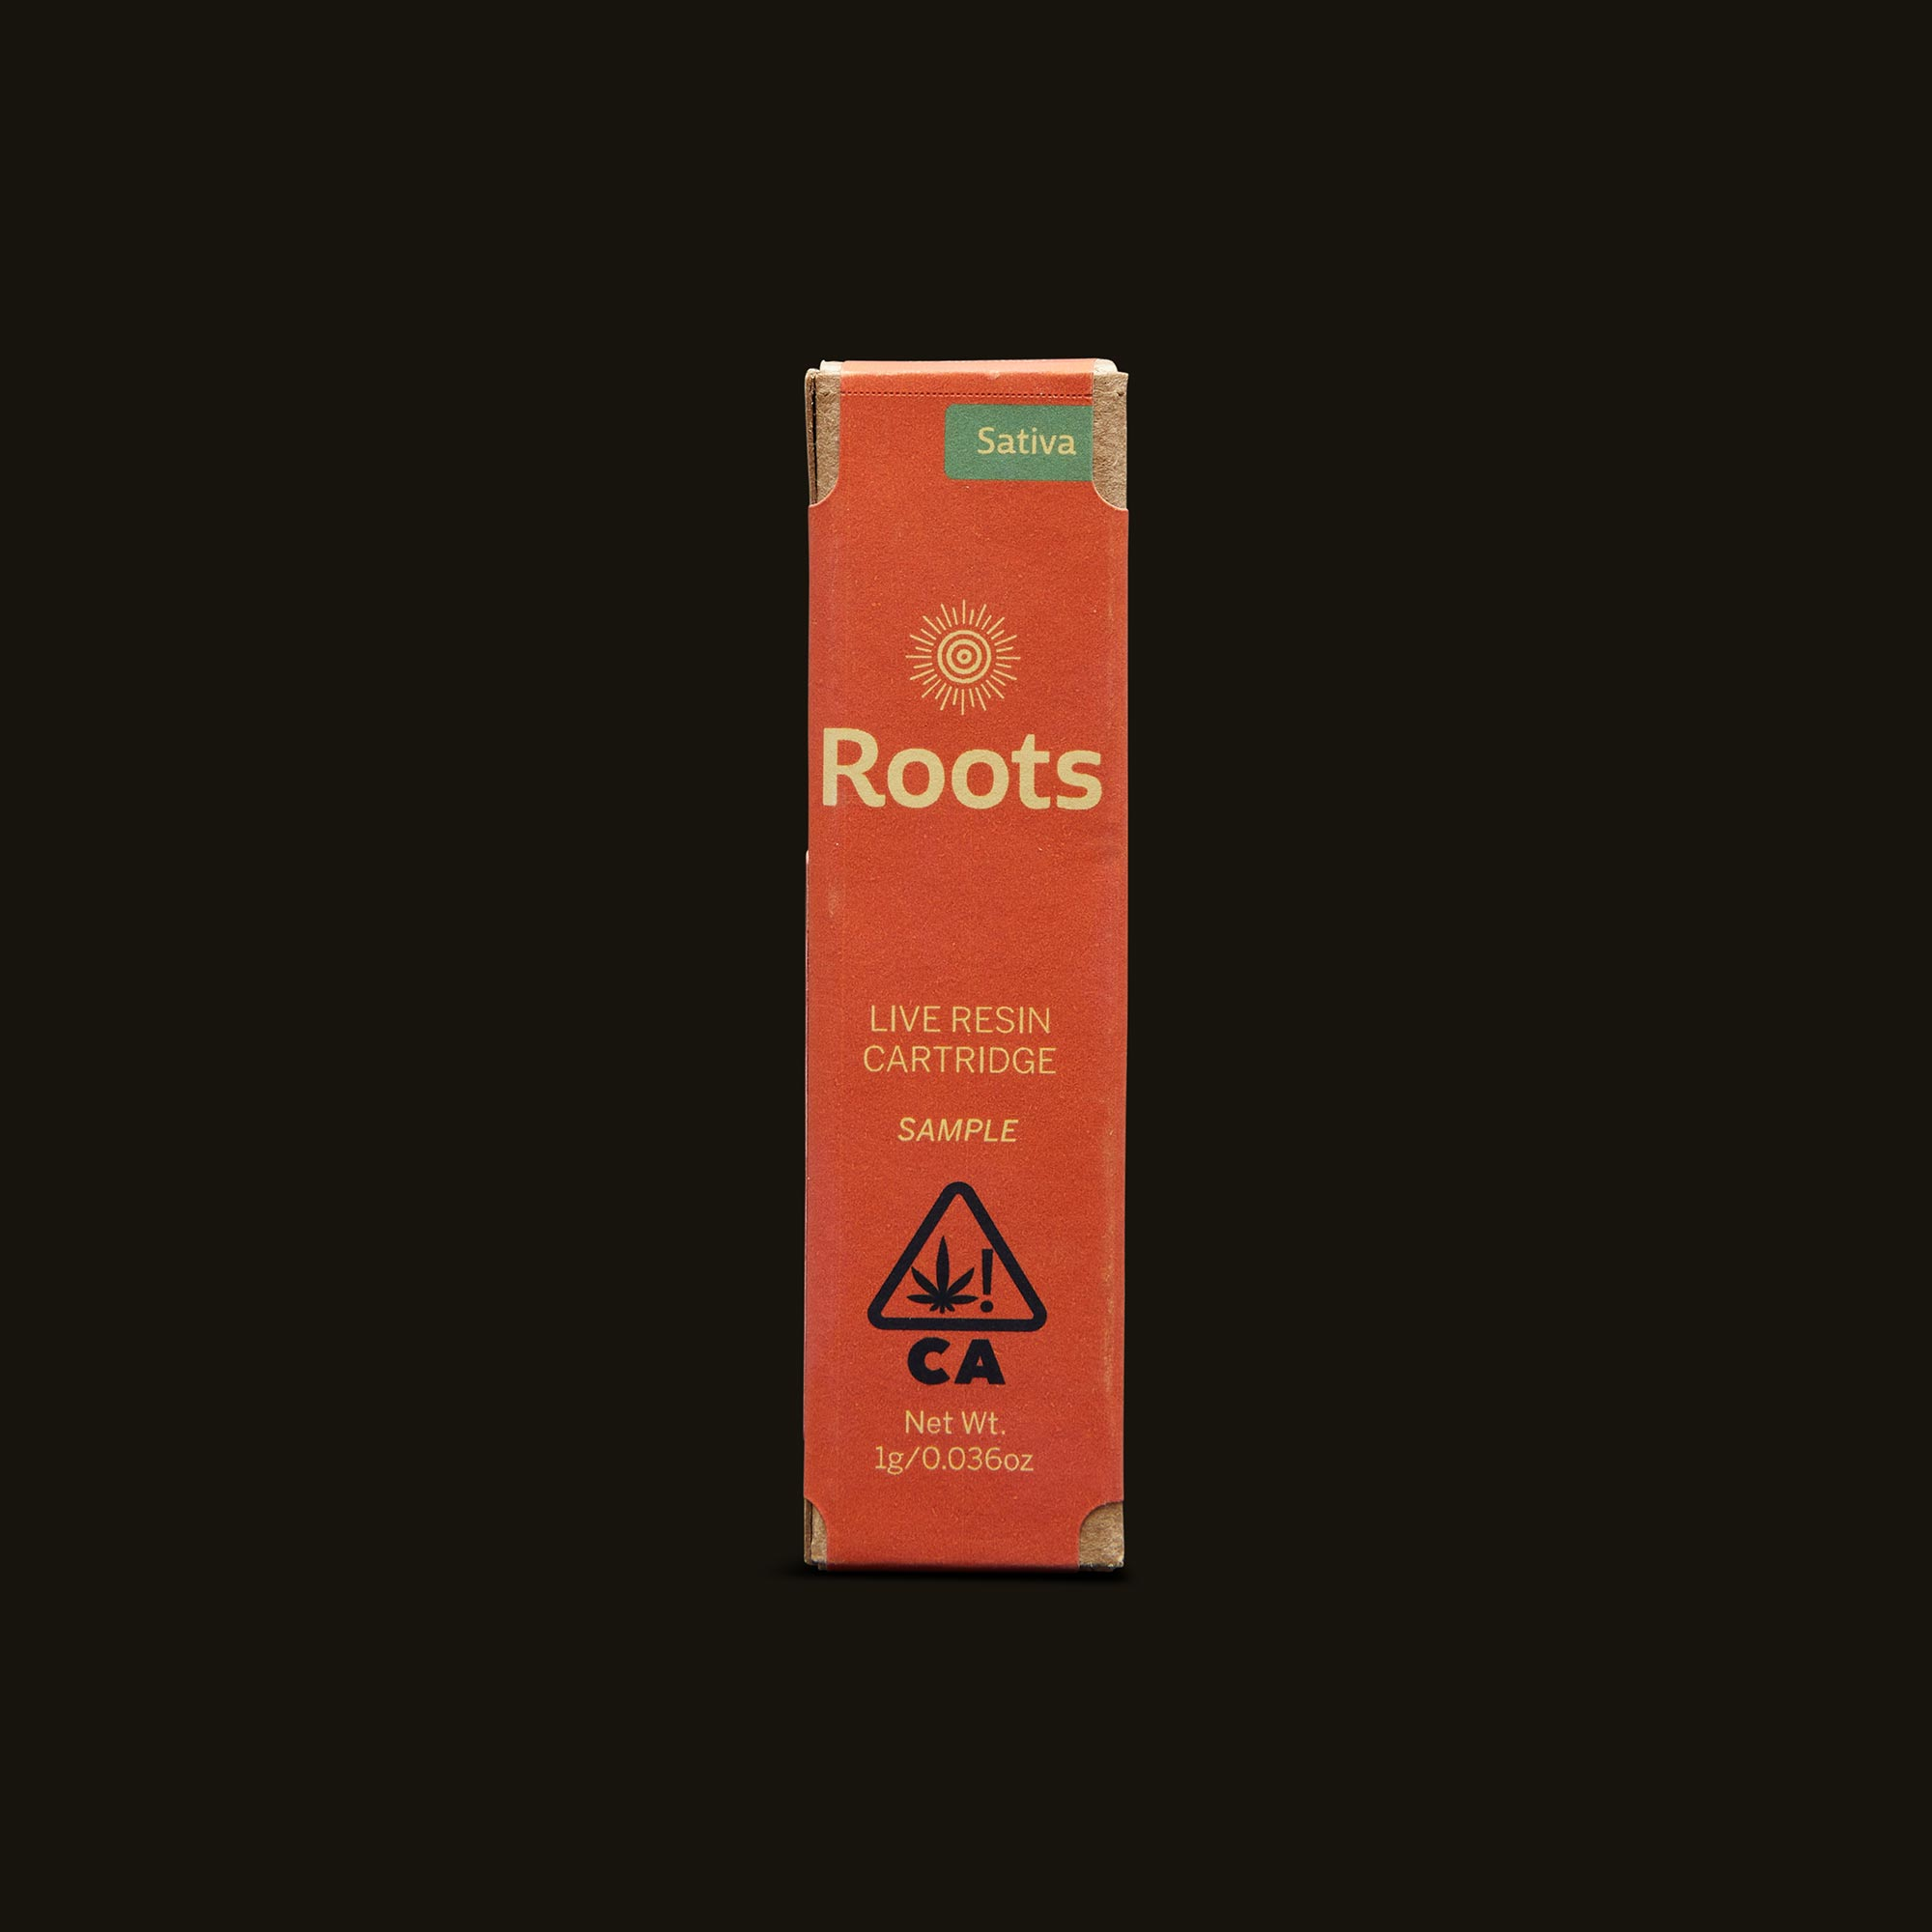 Roots Sativa 510 Vape Cart